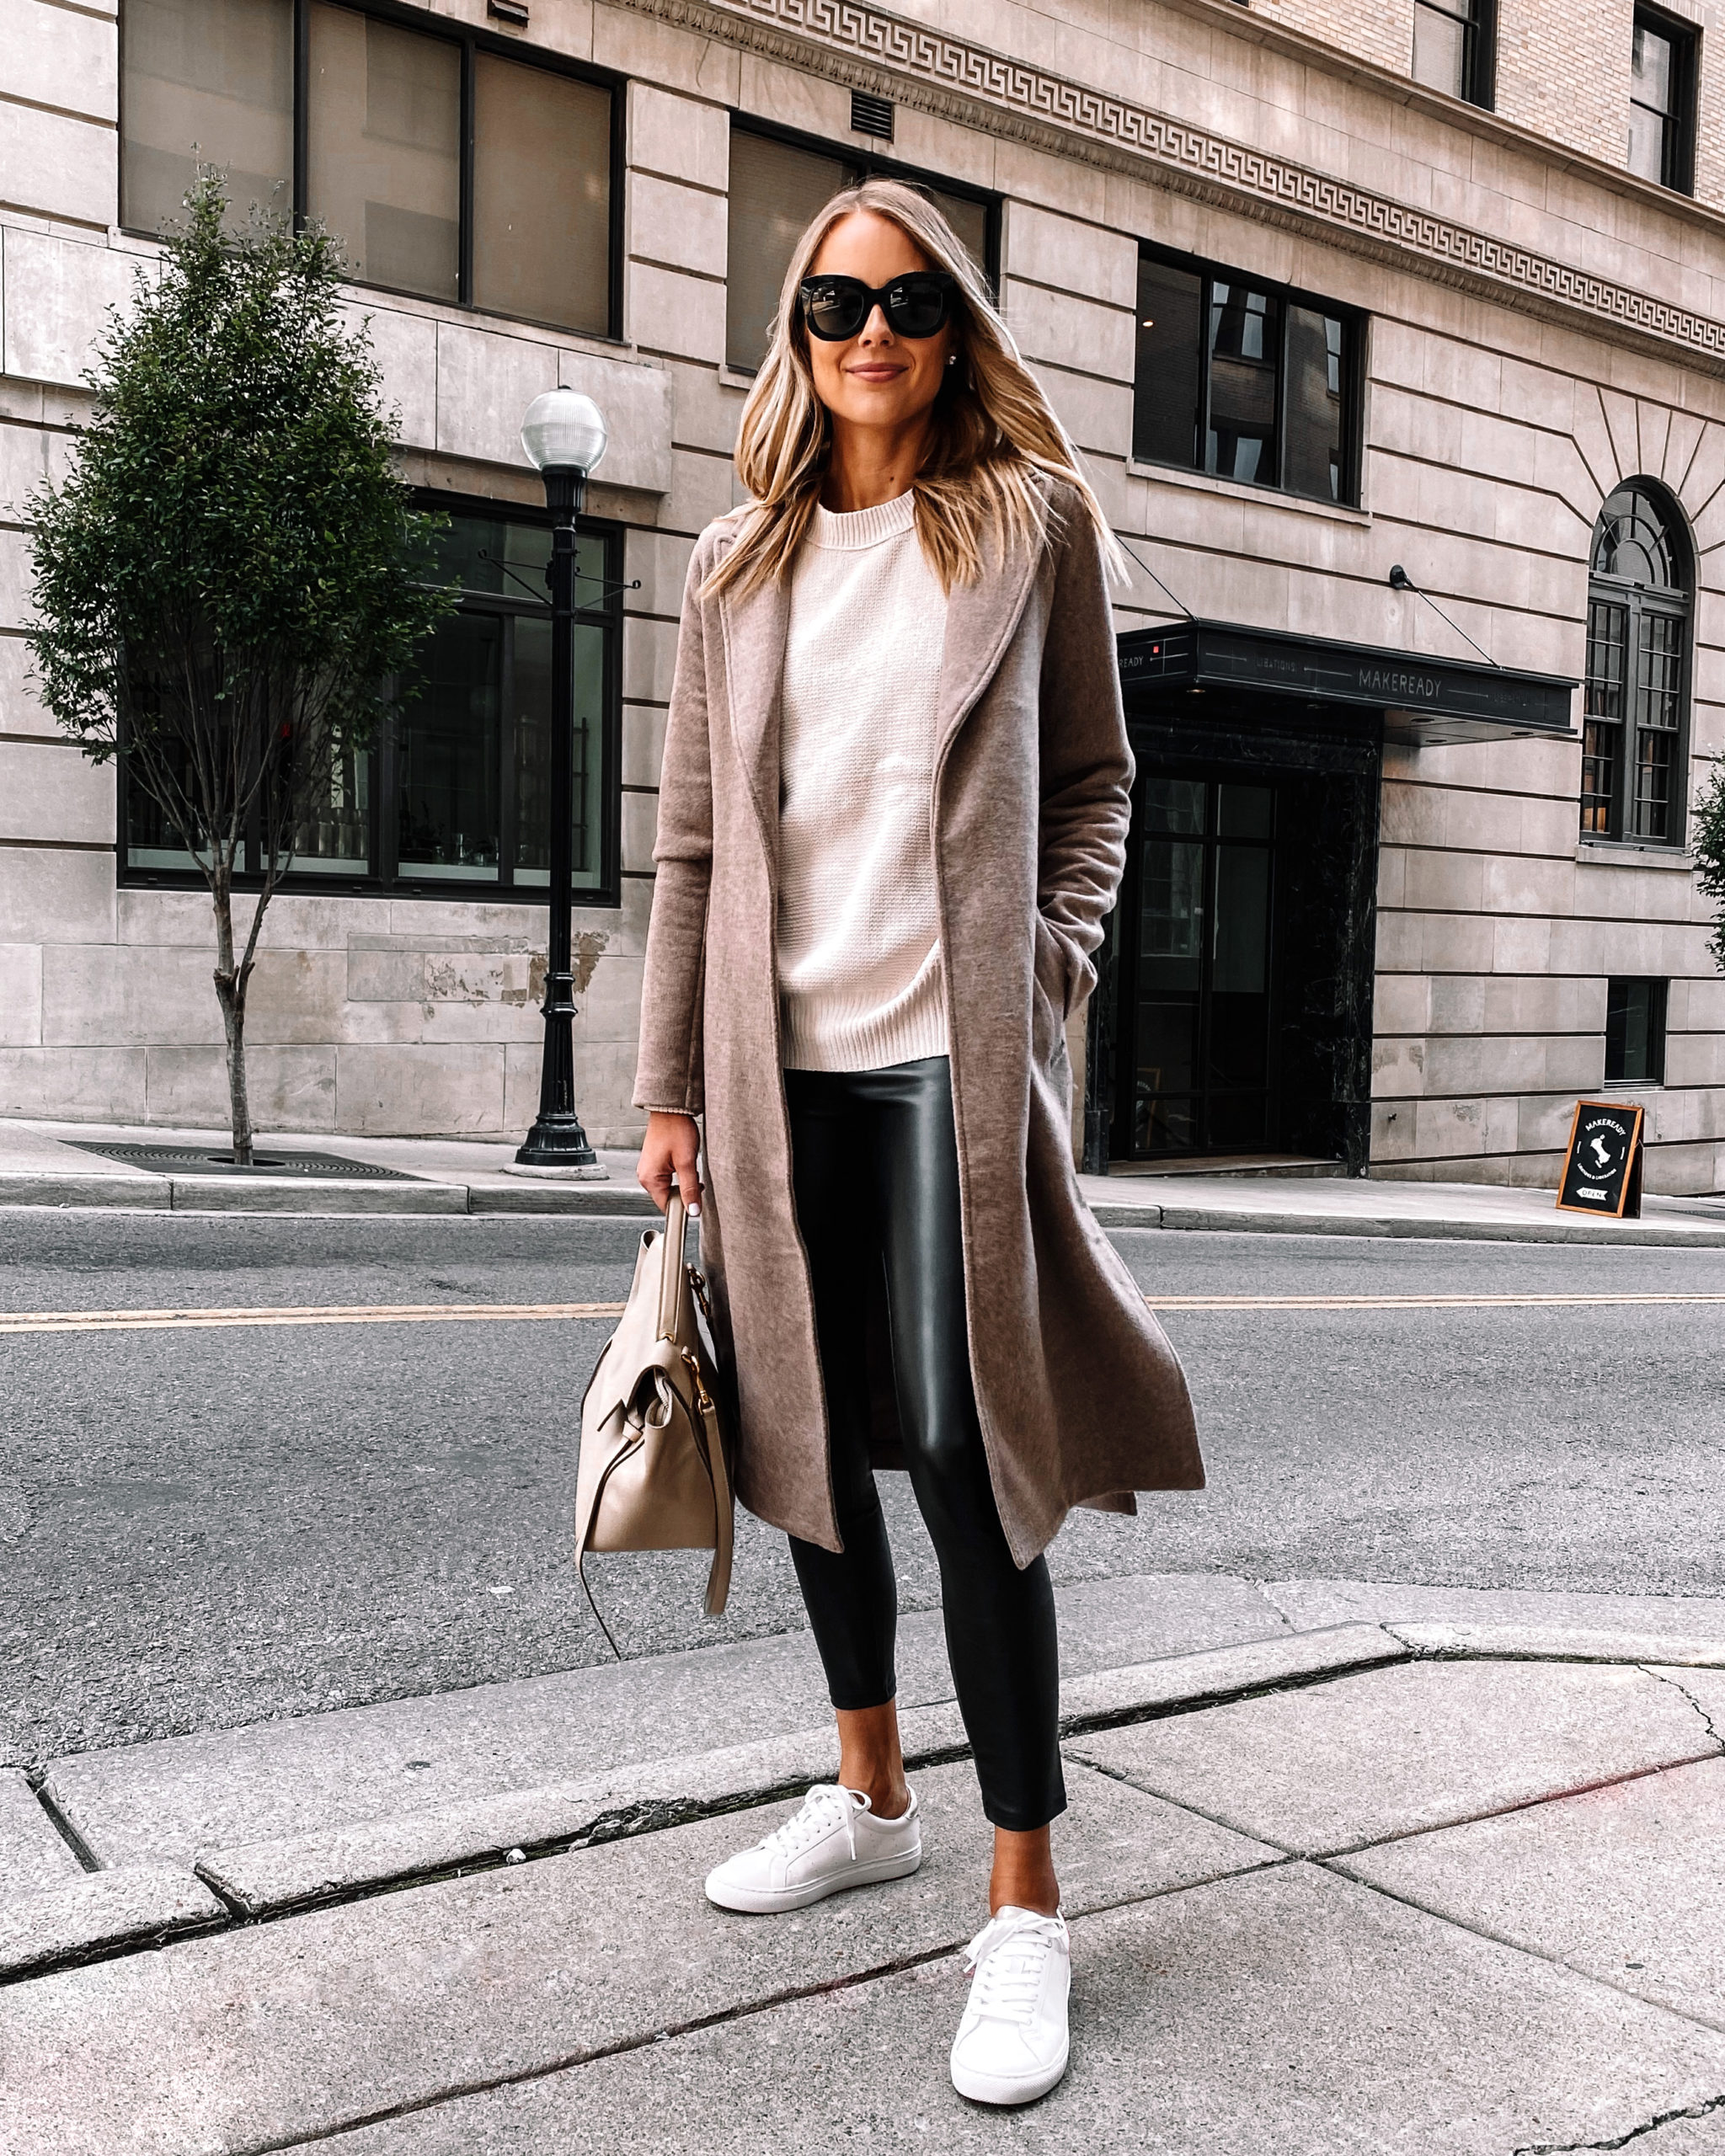 Fashion Jackson Wearing Beige Wool Wrap Coat White Sweater Black Faux Leather Leggings White Sneakers Fall Outfit